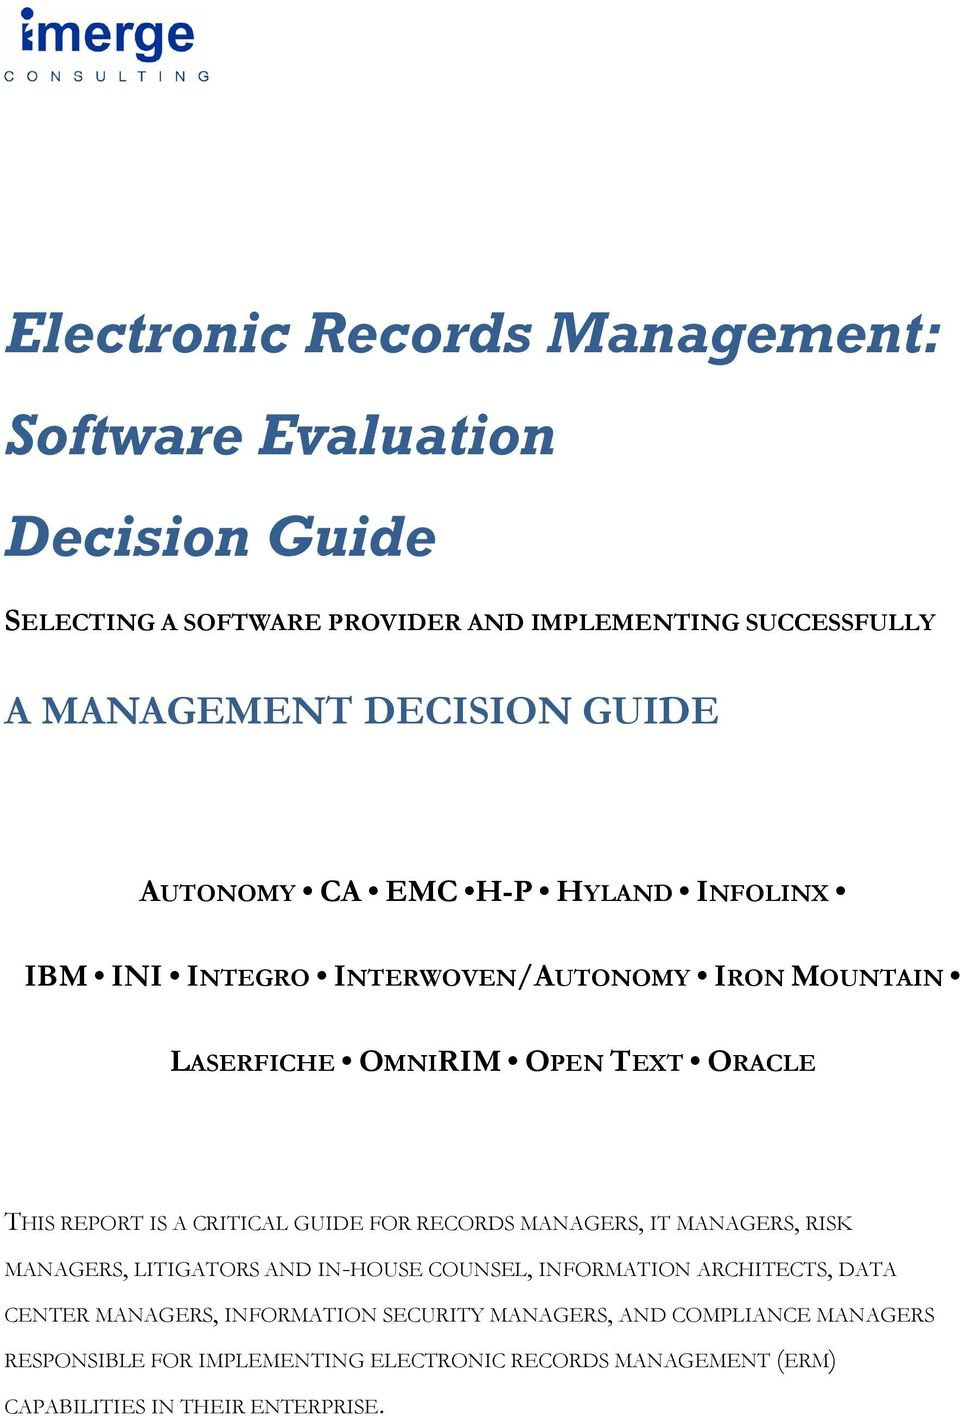 CRITICAL GUIDE FOR RECORDS MANAGERS, IT MANAGERS, RISK MANAGERS, LITIGATORS AND IN-HOUSE COUNSEL, INFORMATION ARCHITECTS, DATA CENTER MANAGERS,